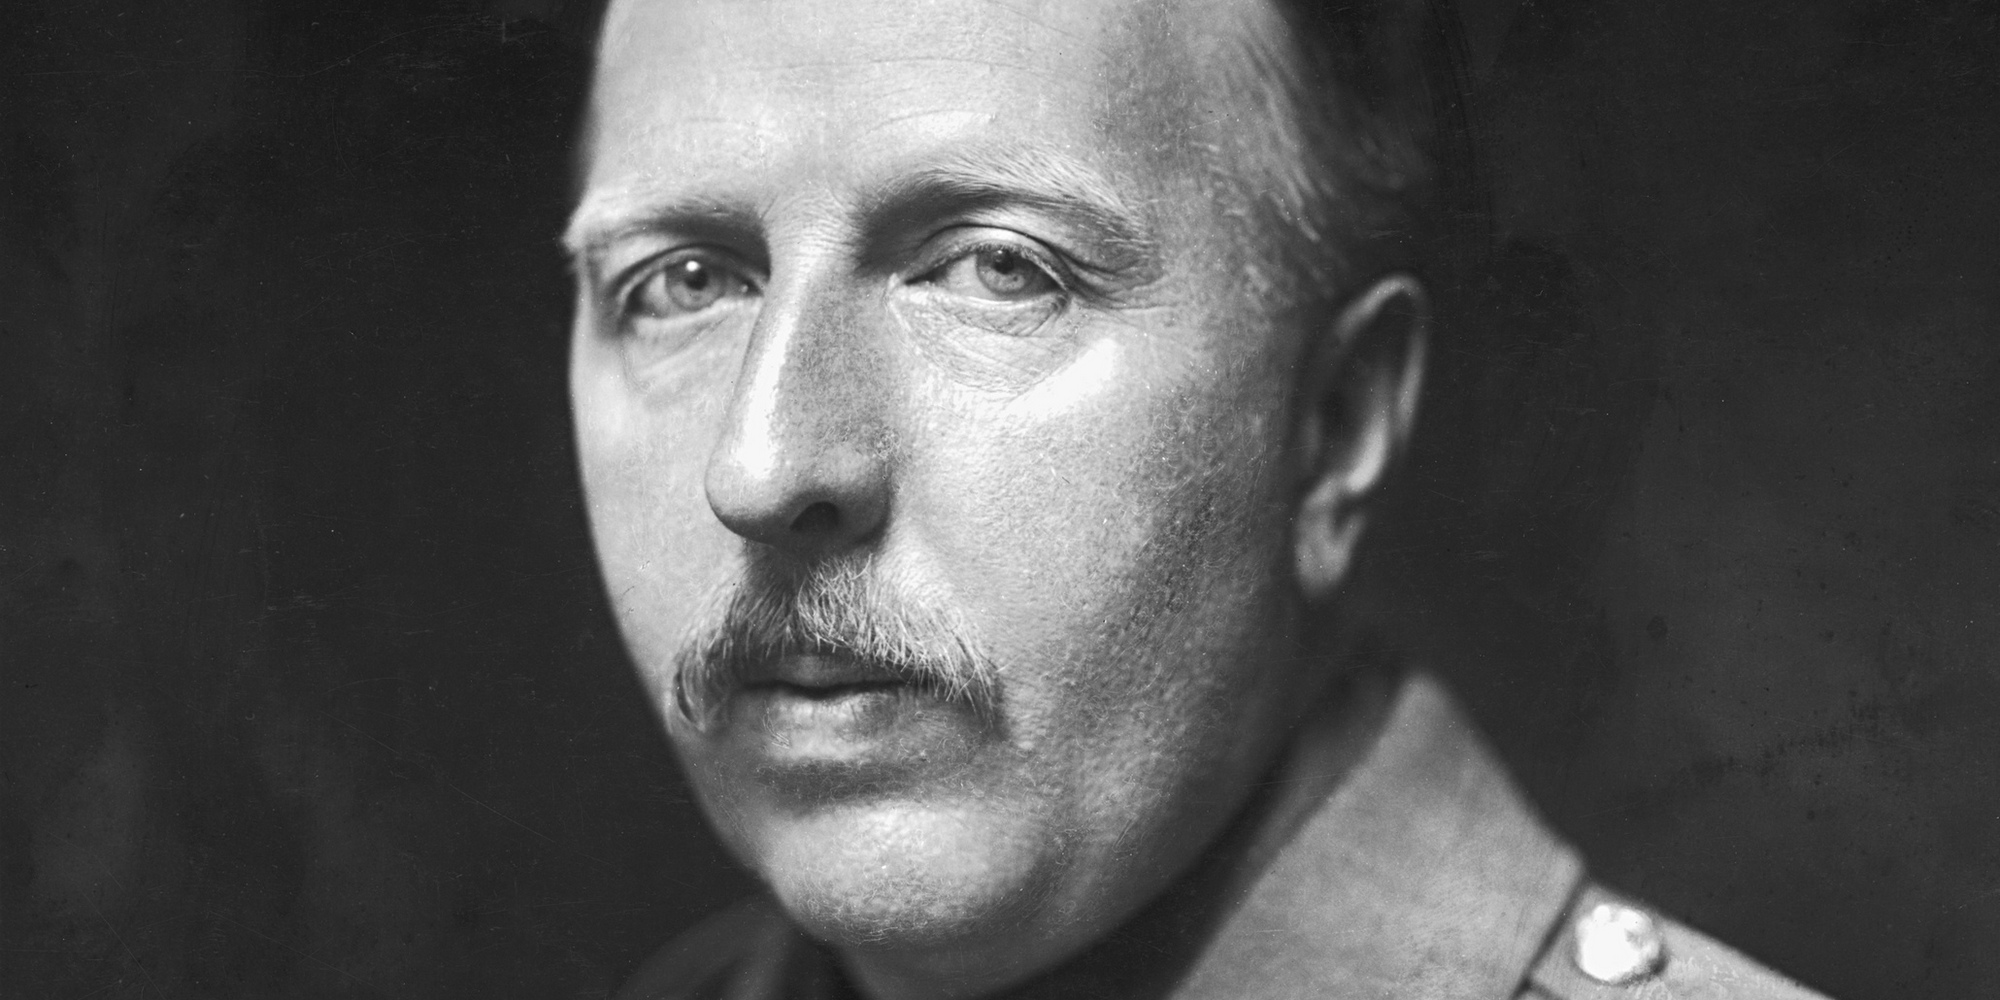 /images/upload/blog/1674/1674_Ford-Madox-Ford-009.jpg